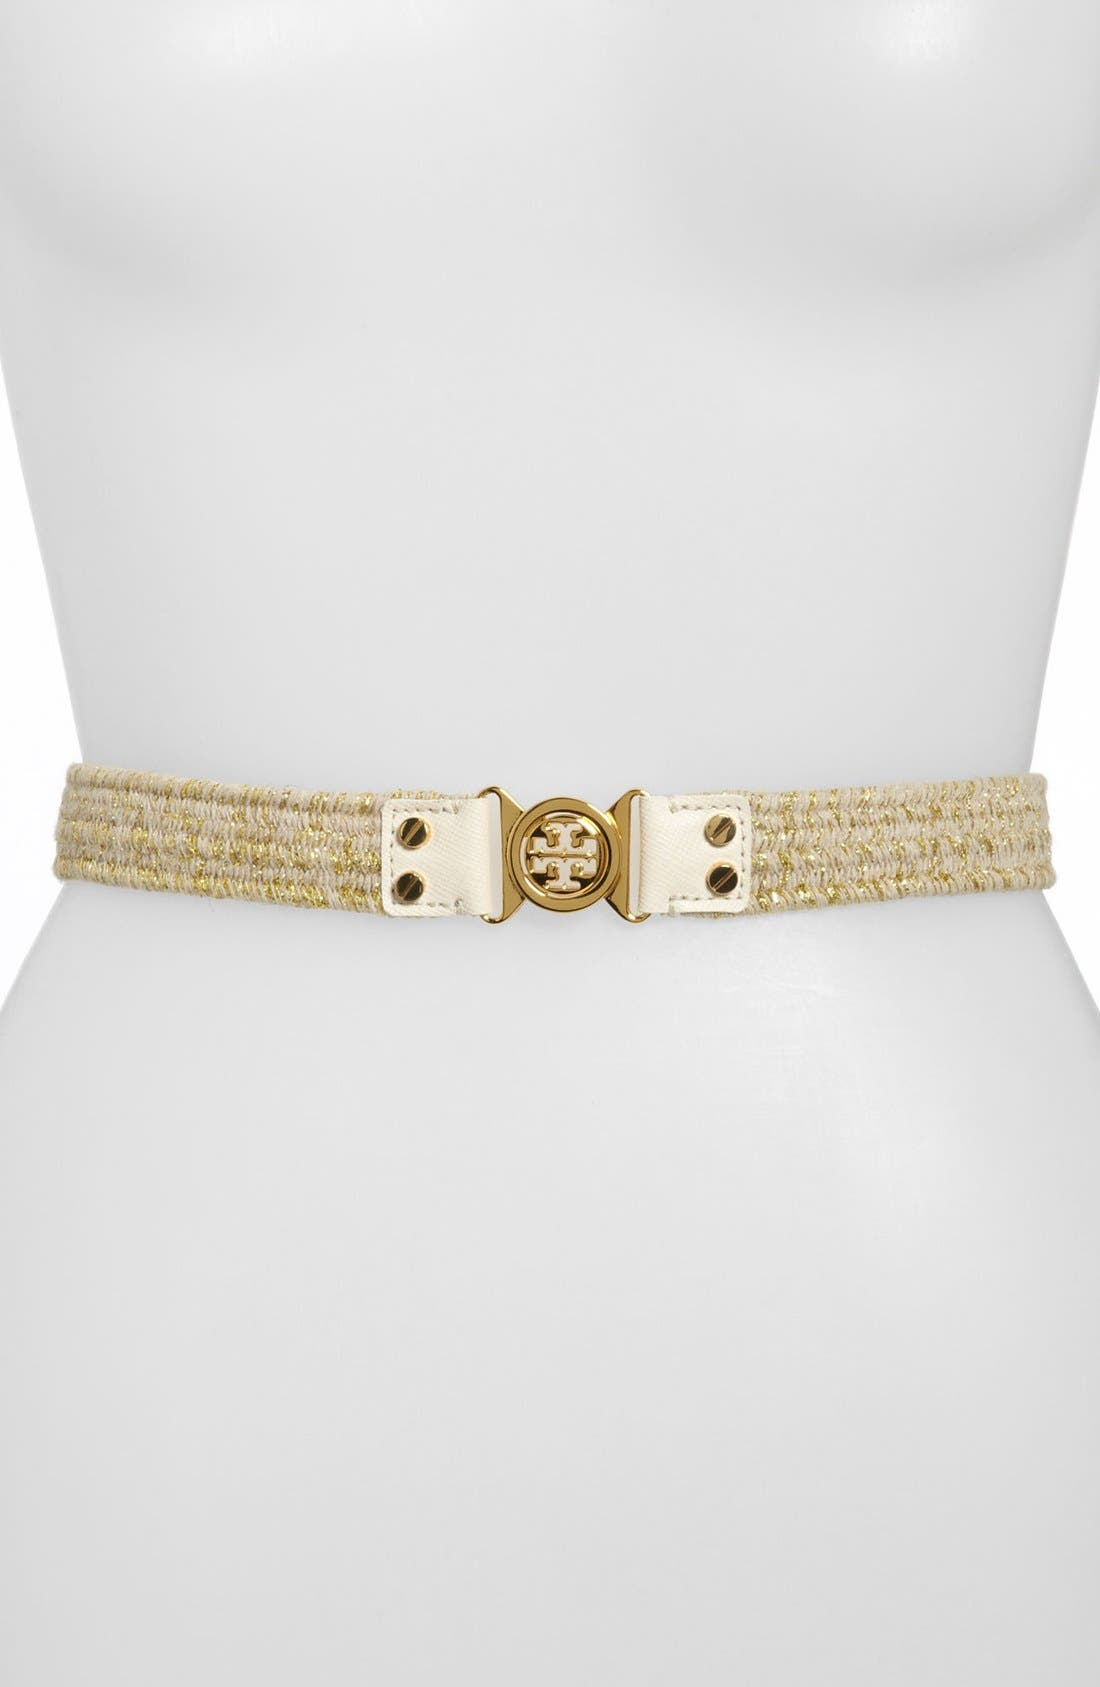 Main Image - Tory Burch 'Interlocking Logo - Mini' Stretch Belt